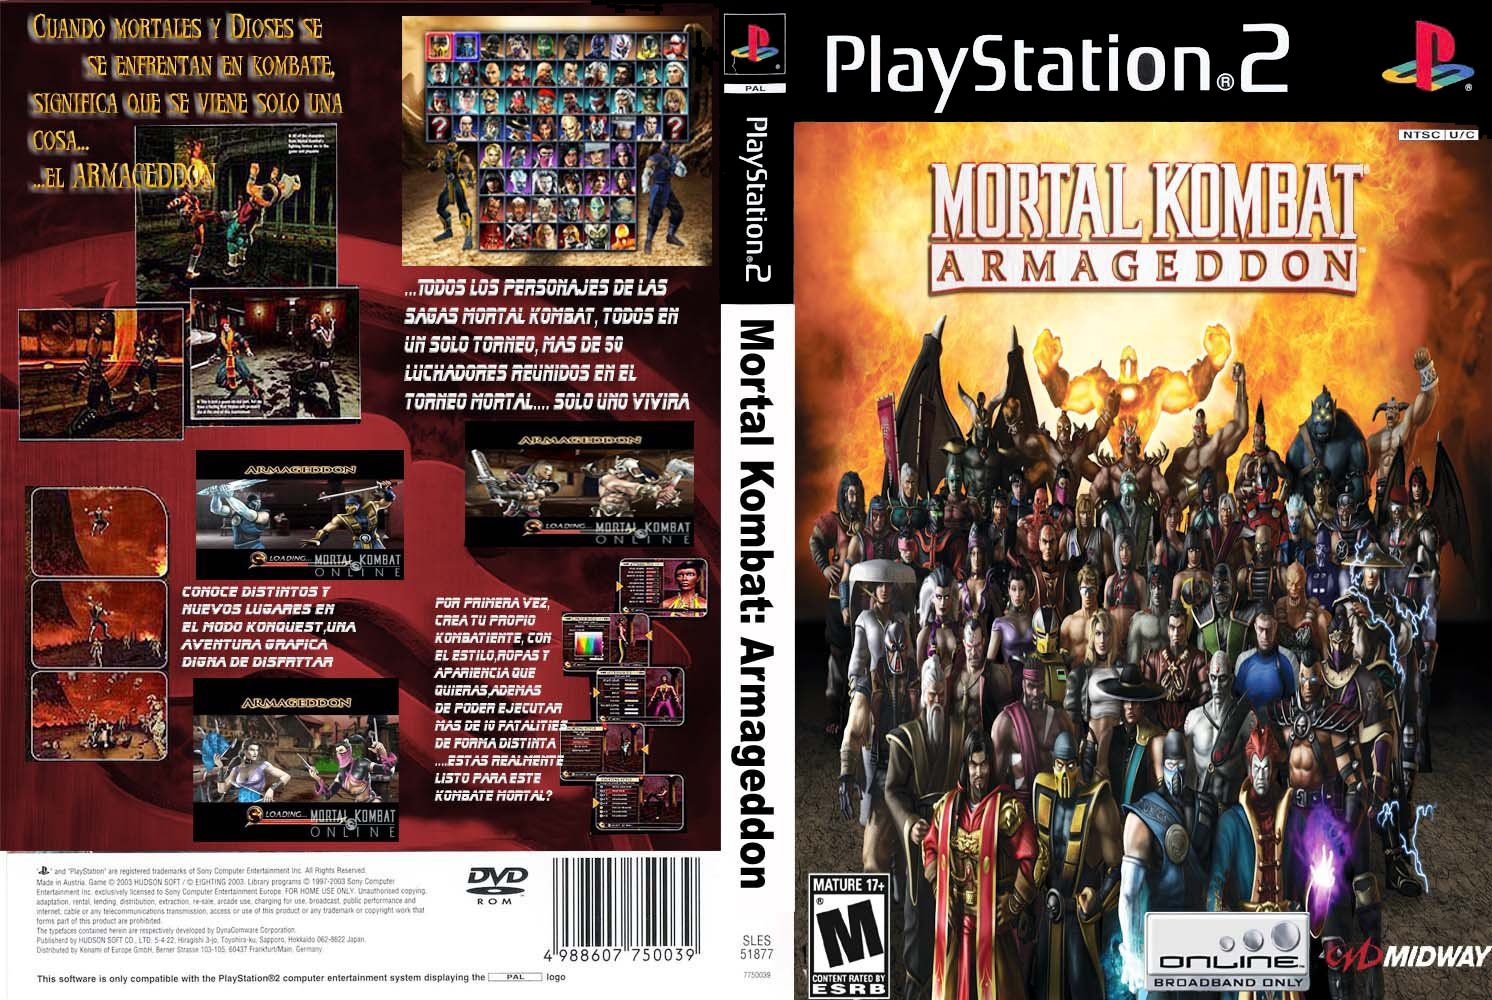 Descargar Mortal Kombat Armageddon [Espa�ol] [PAL] [PS2] [GF